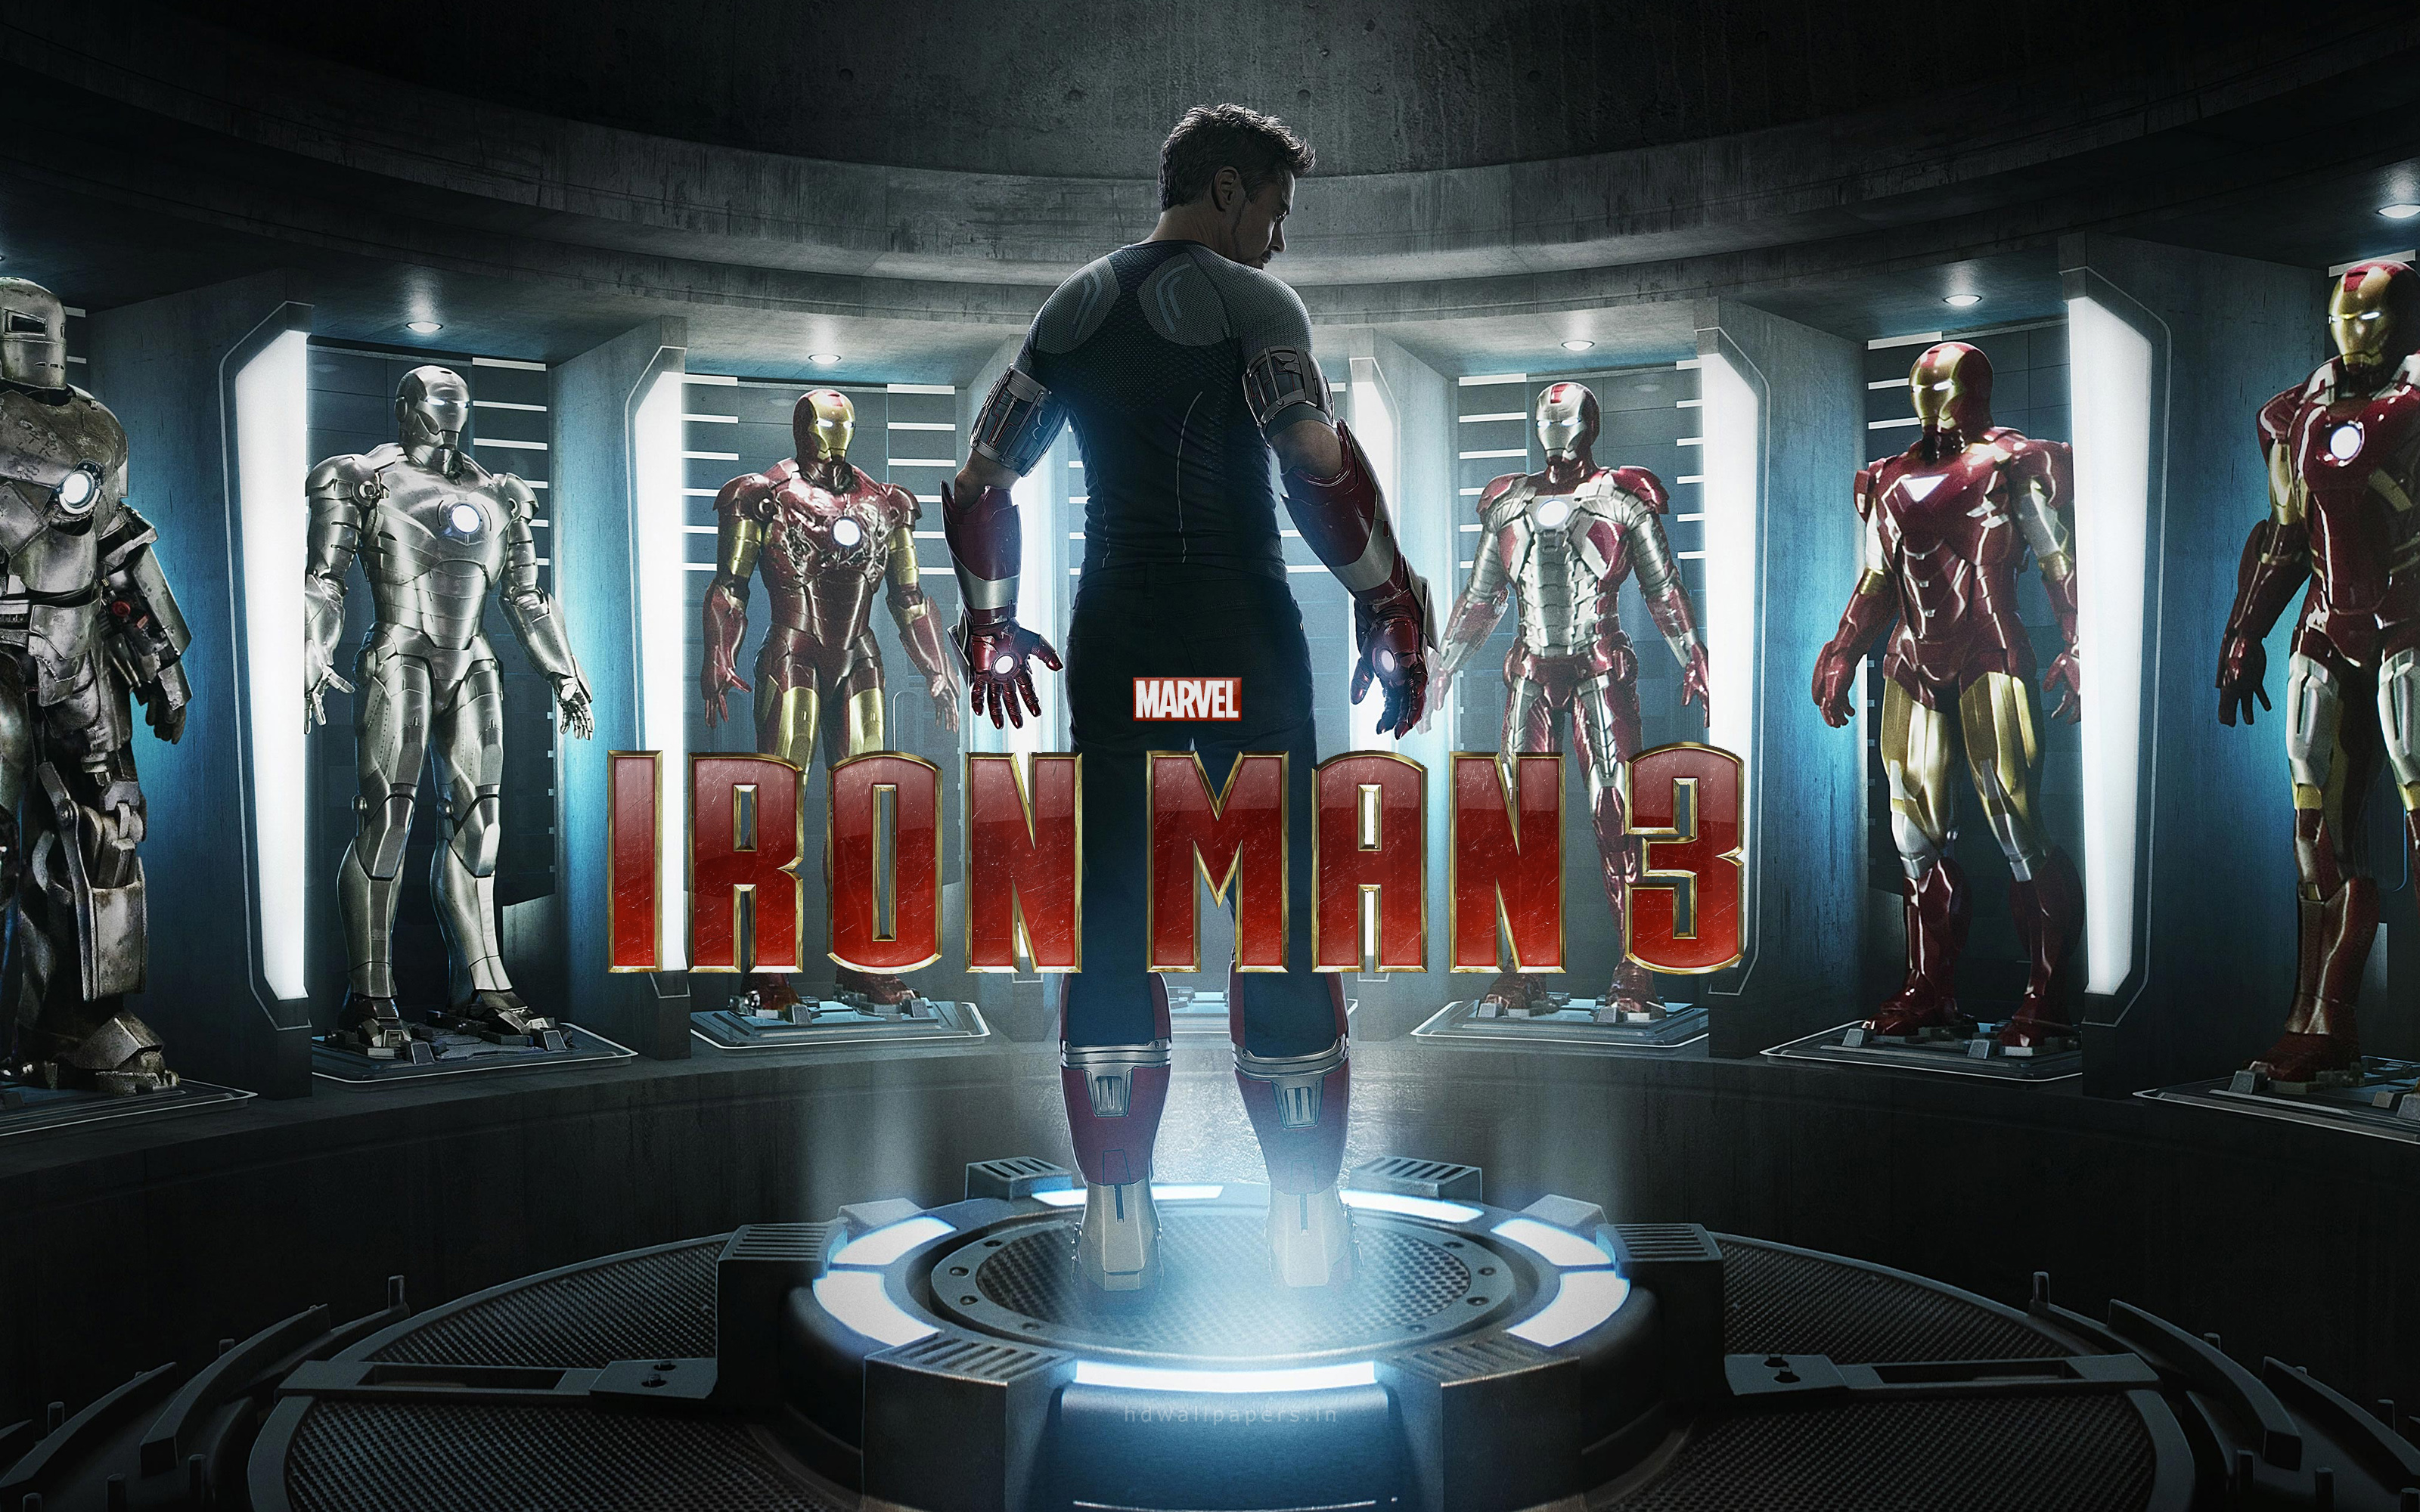 Download Iron Man 3 movie in HDRip DVDRip BDRip, Iron Man 3 full ...